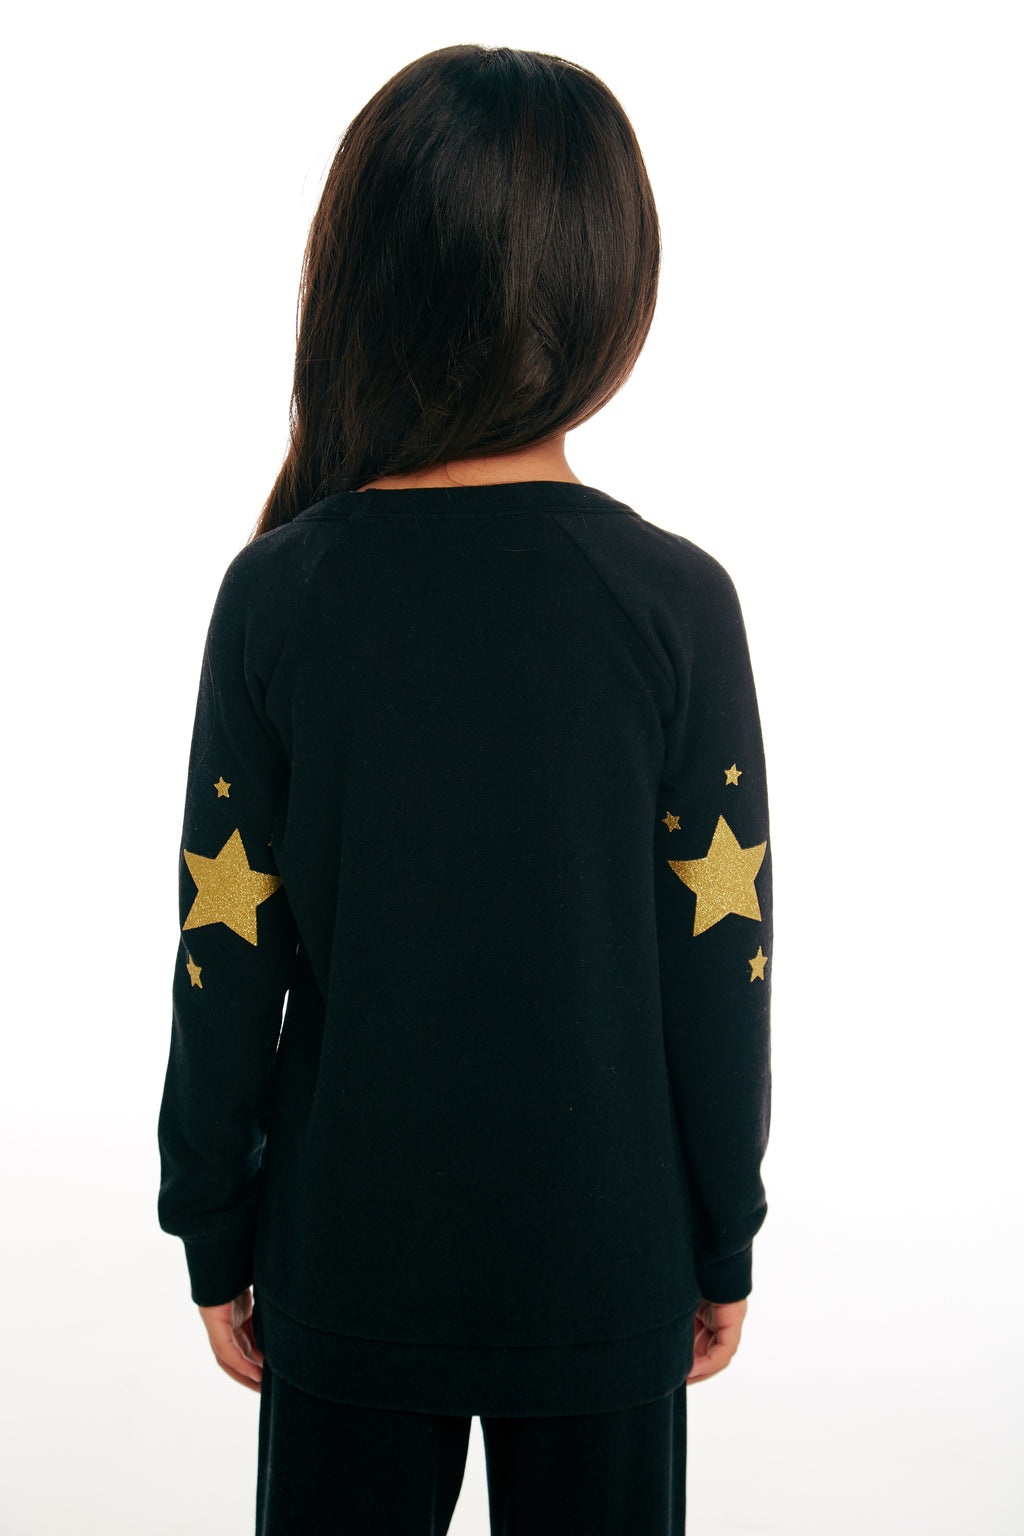 Chaser Girls L/S Black Top With Golden Unicorn